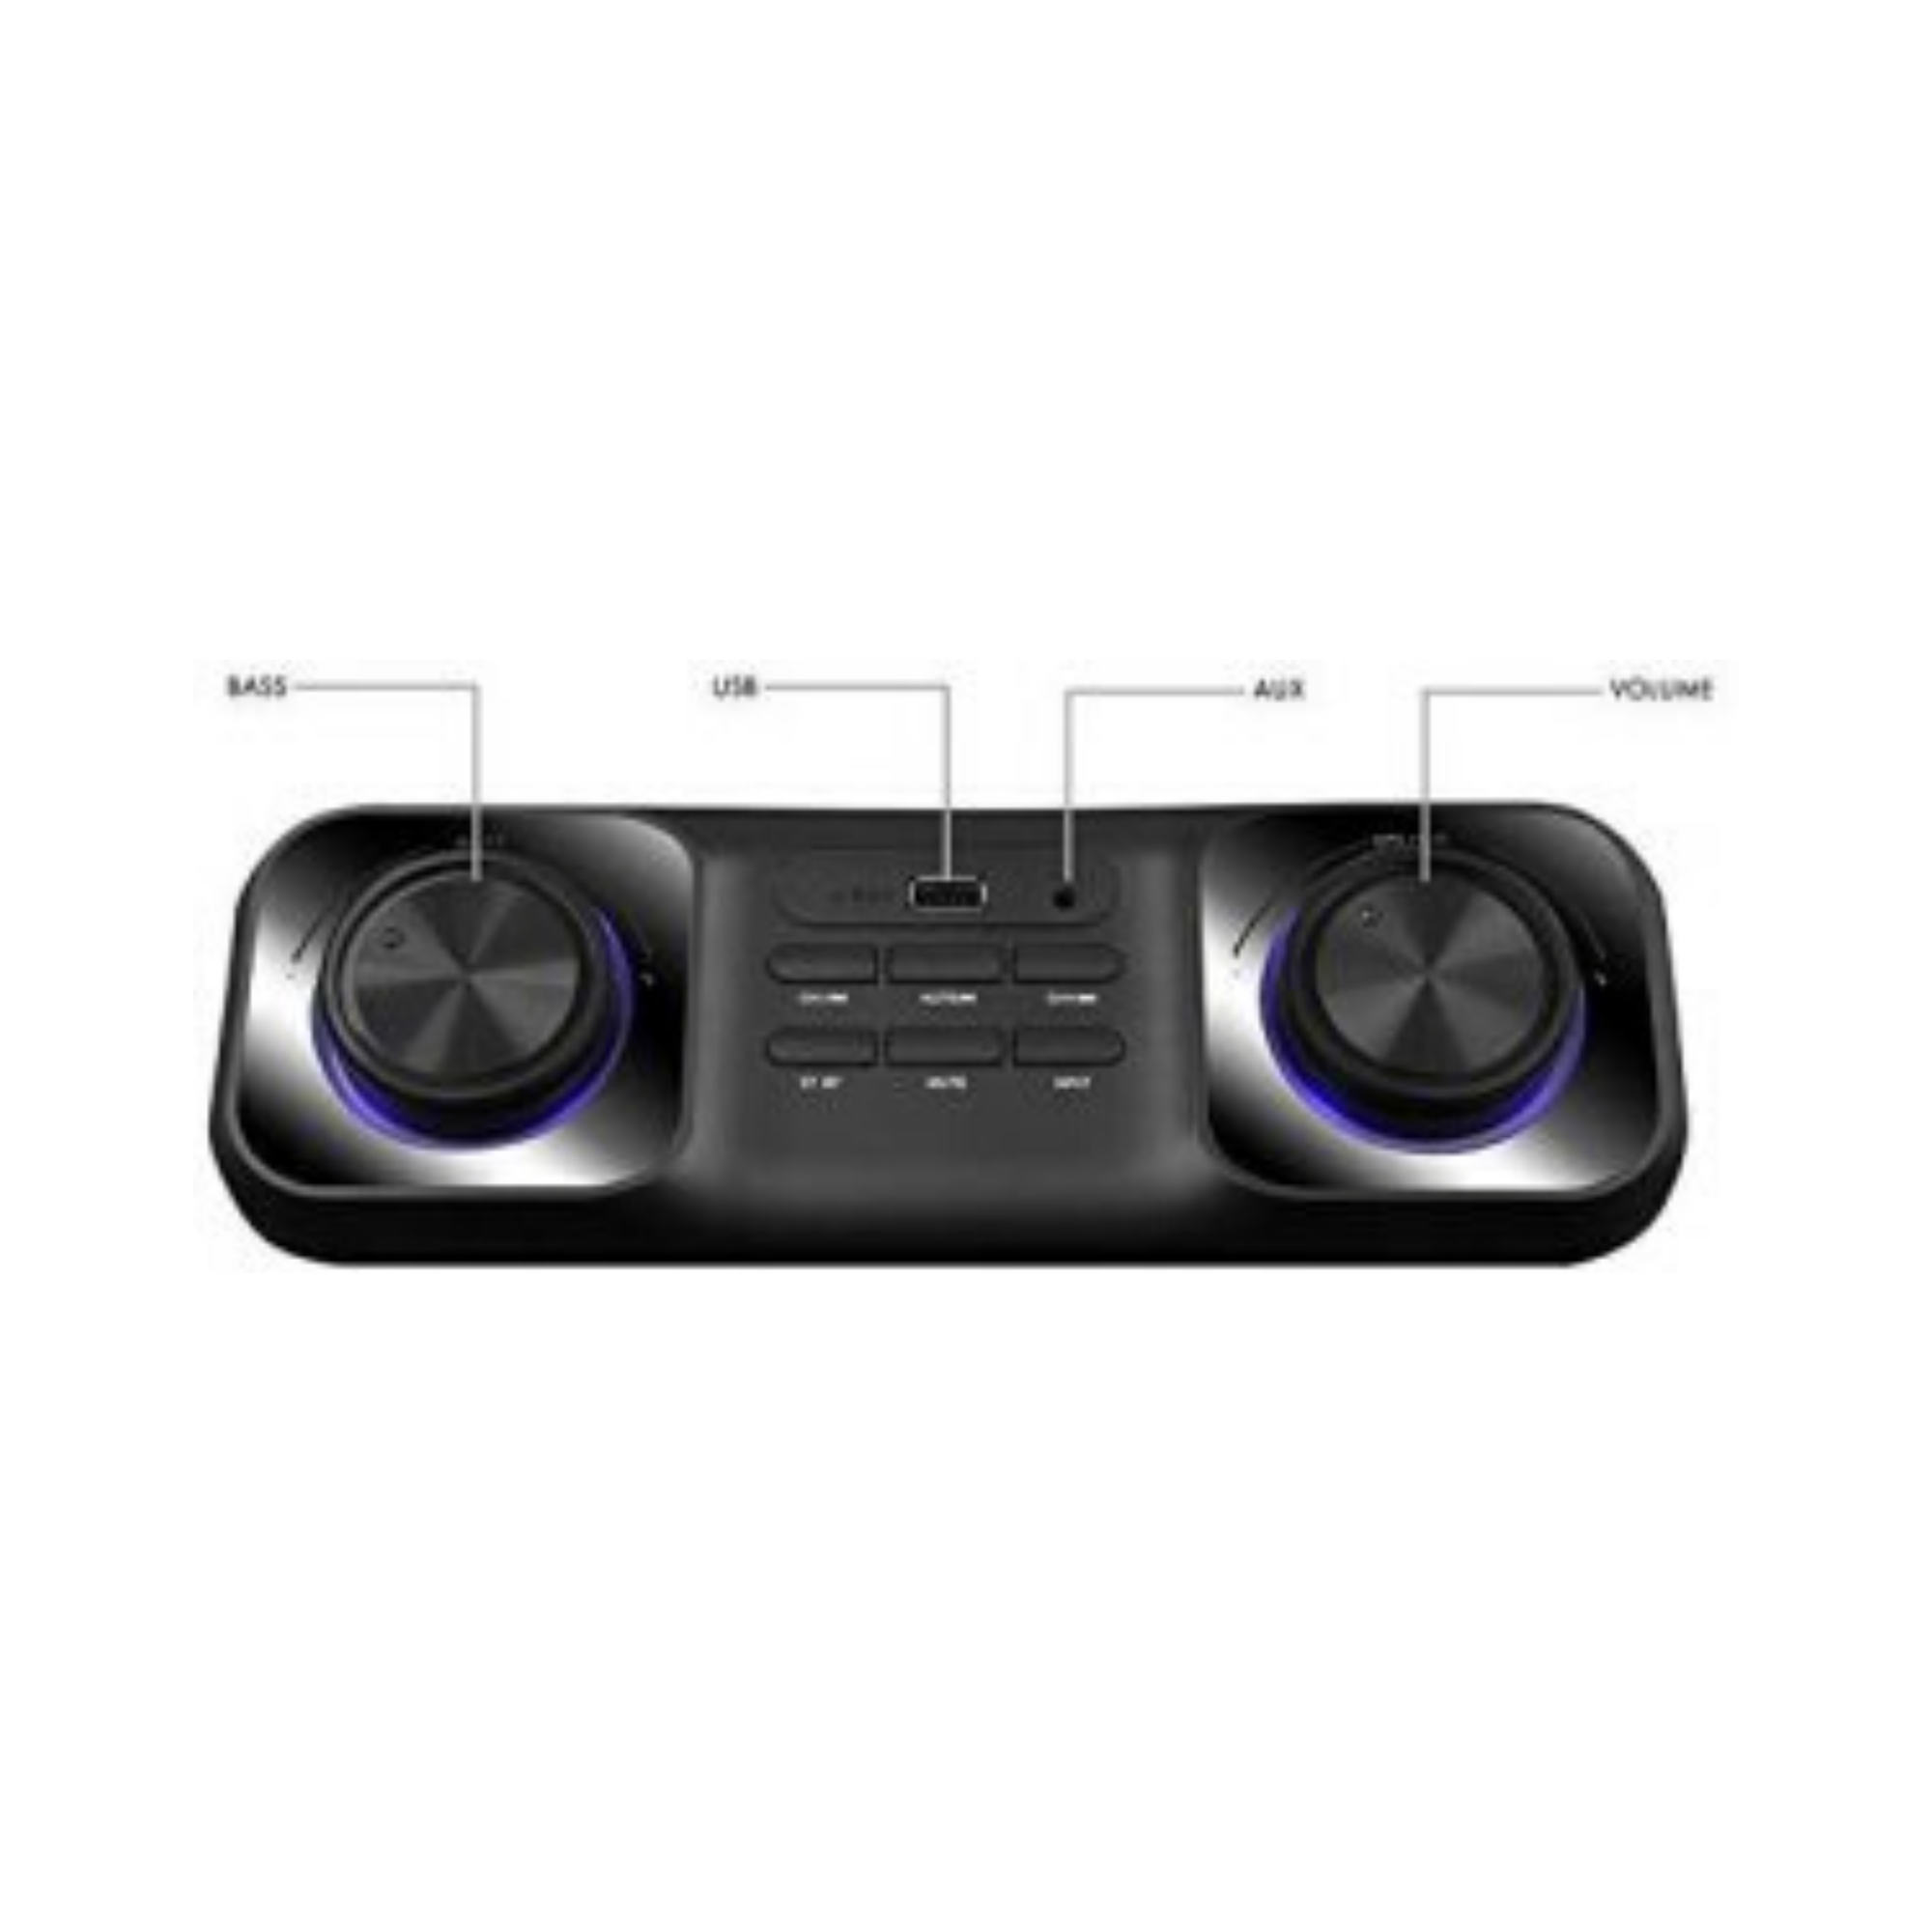 Zebronics Zeb- Space CAR 2.1 Multimeida Compact Design Speaker with Bluetooth connectivity and USB Input